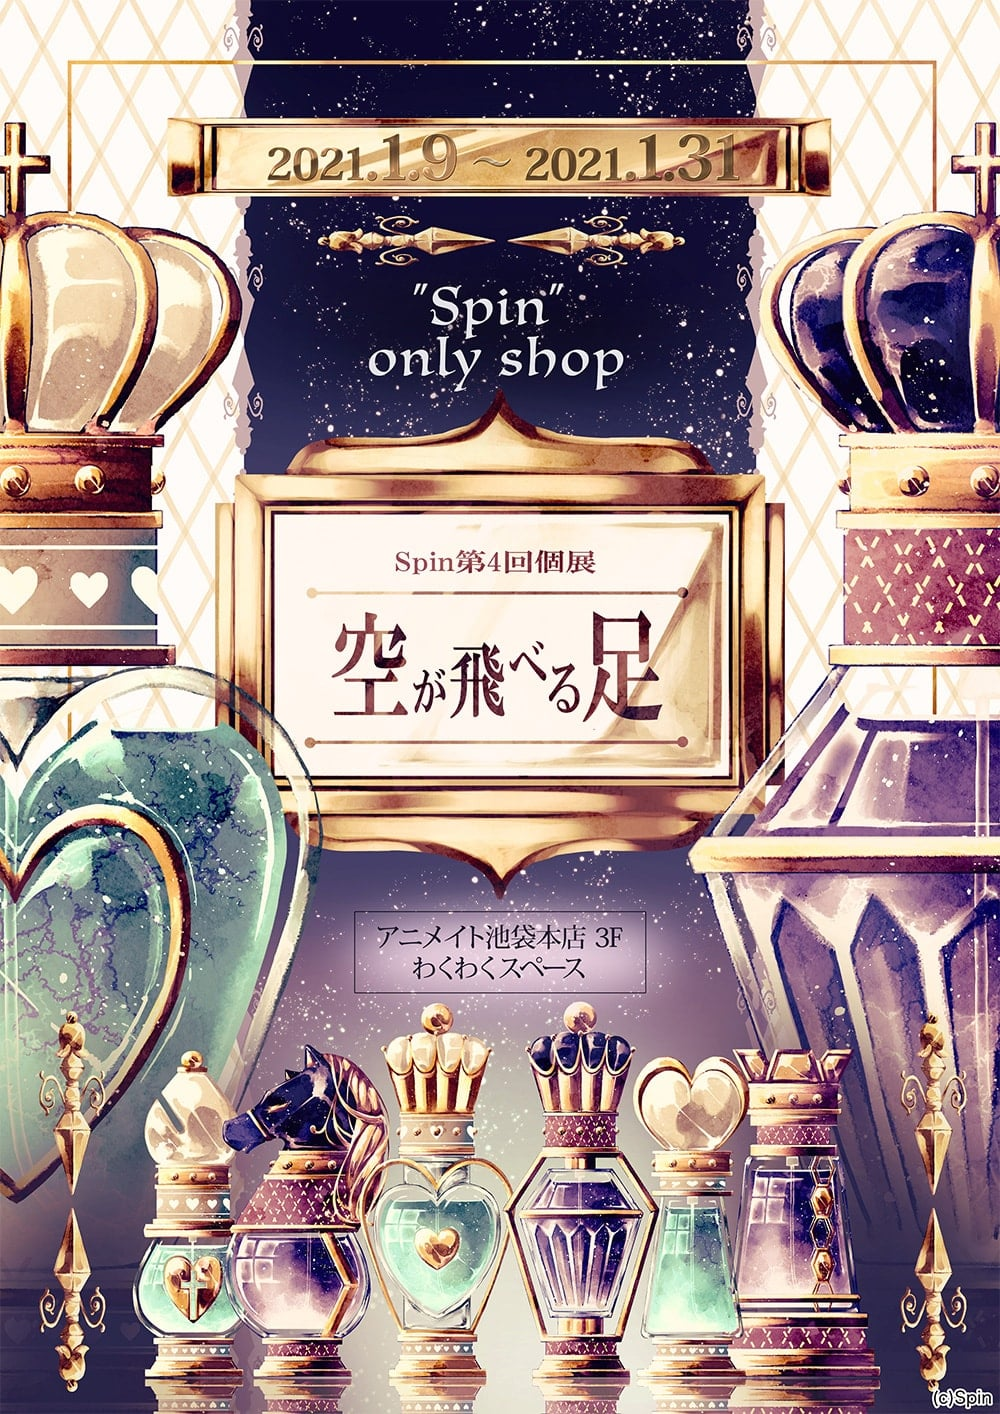 Spin only shop